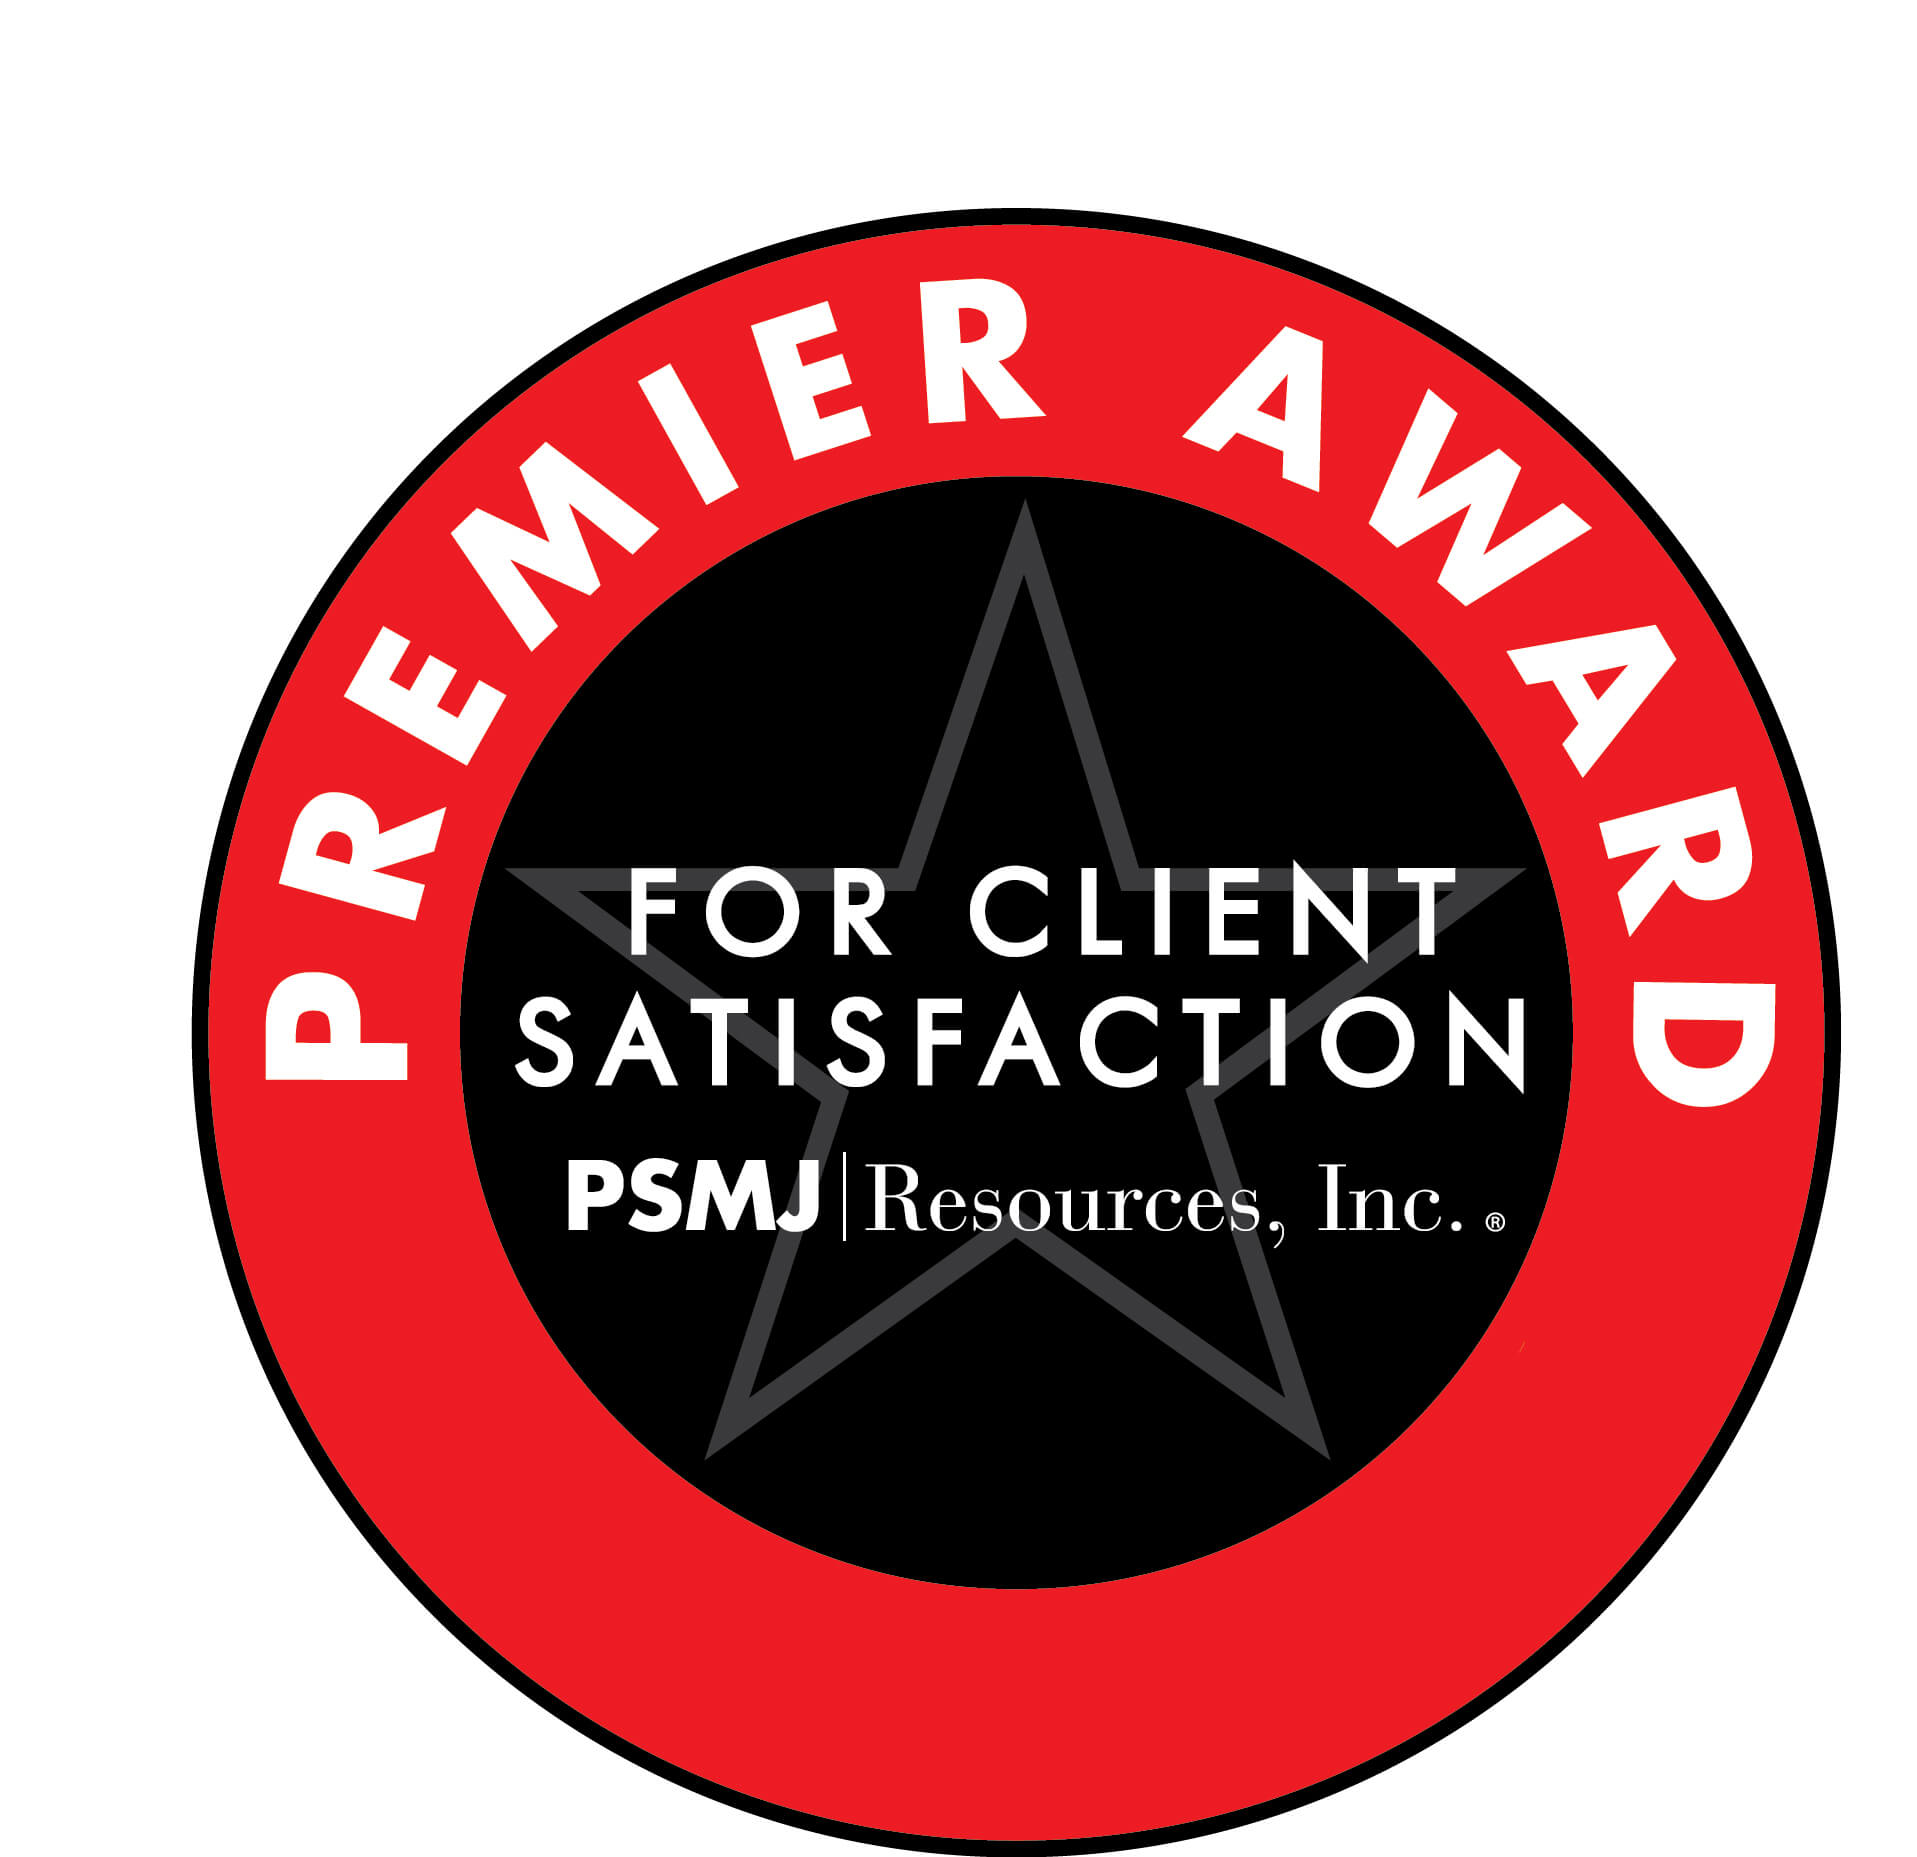 PSMJ Resources Inc. Premier Award for Client Satisfaction